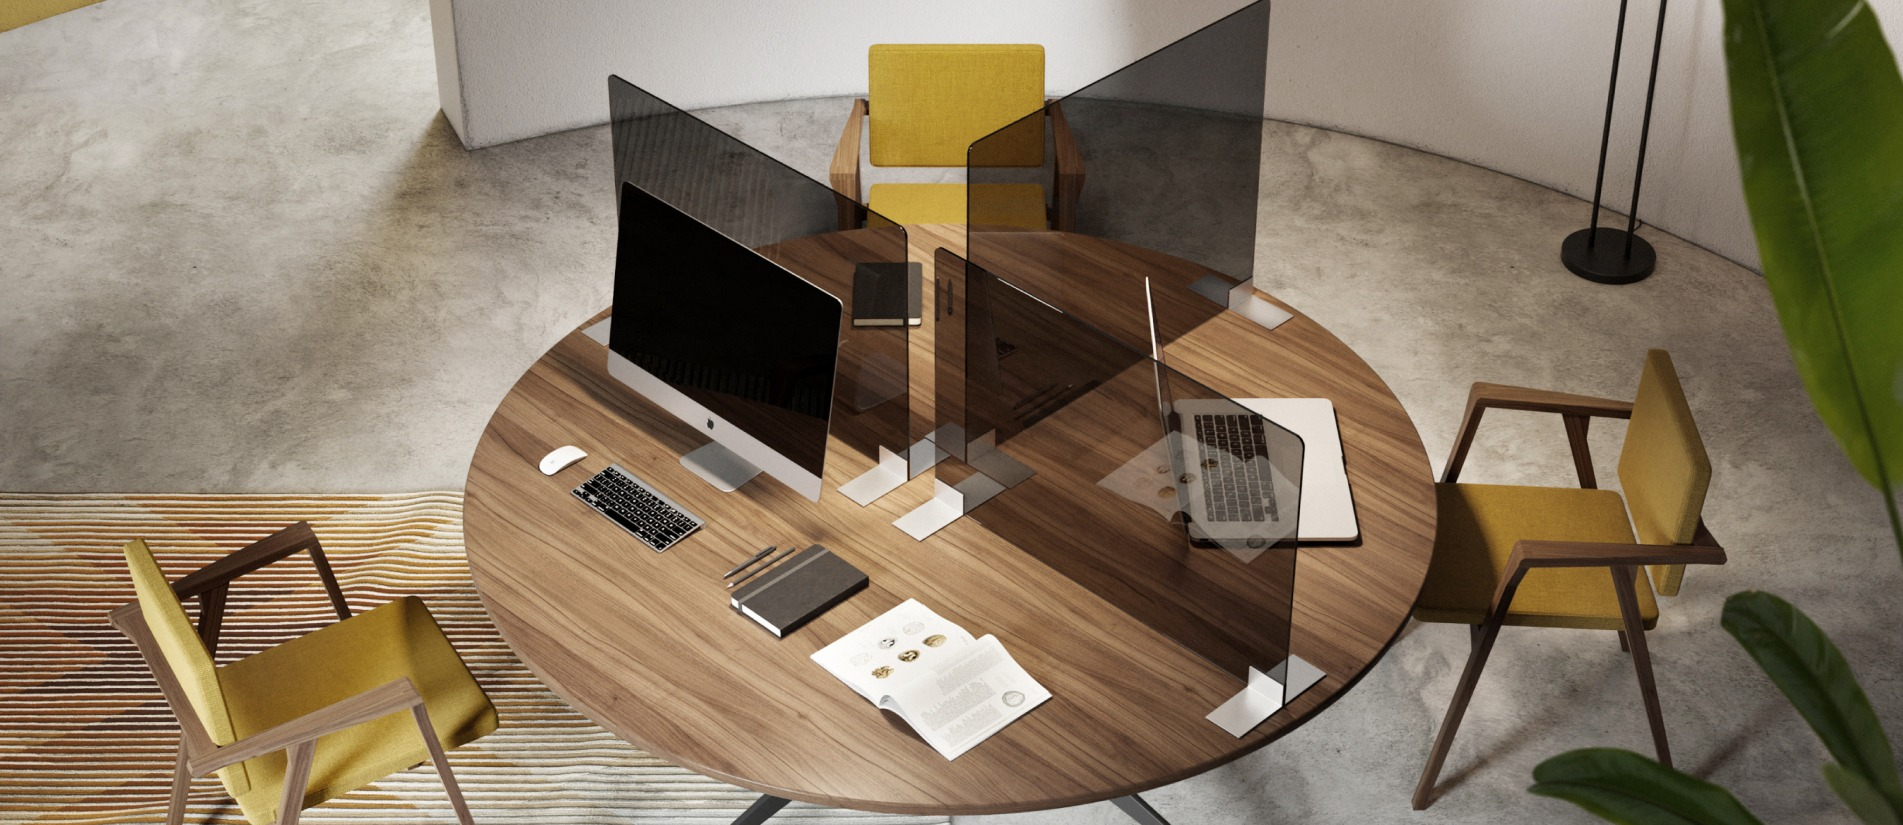 Office computers at a desk with three tabletop desk divider panels by Transwall